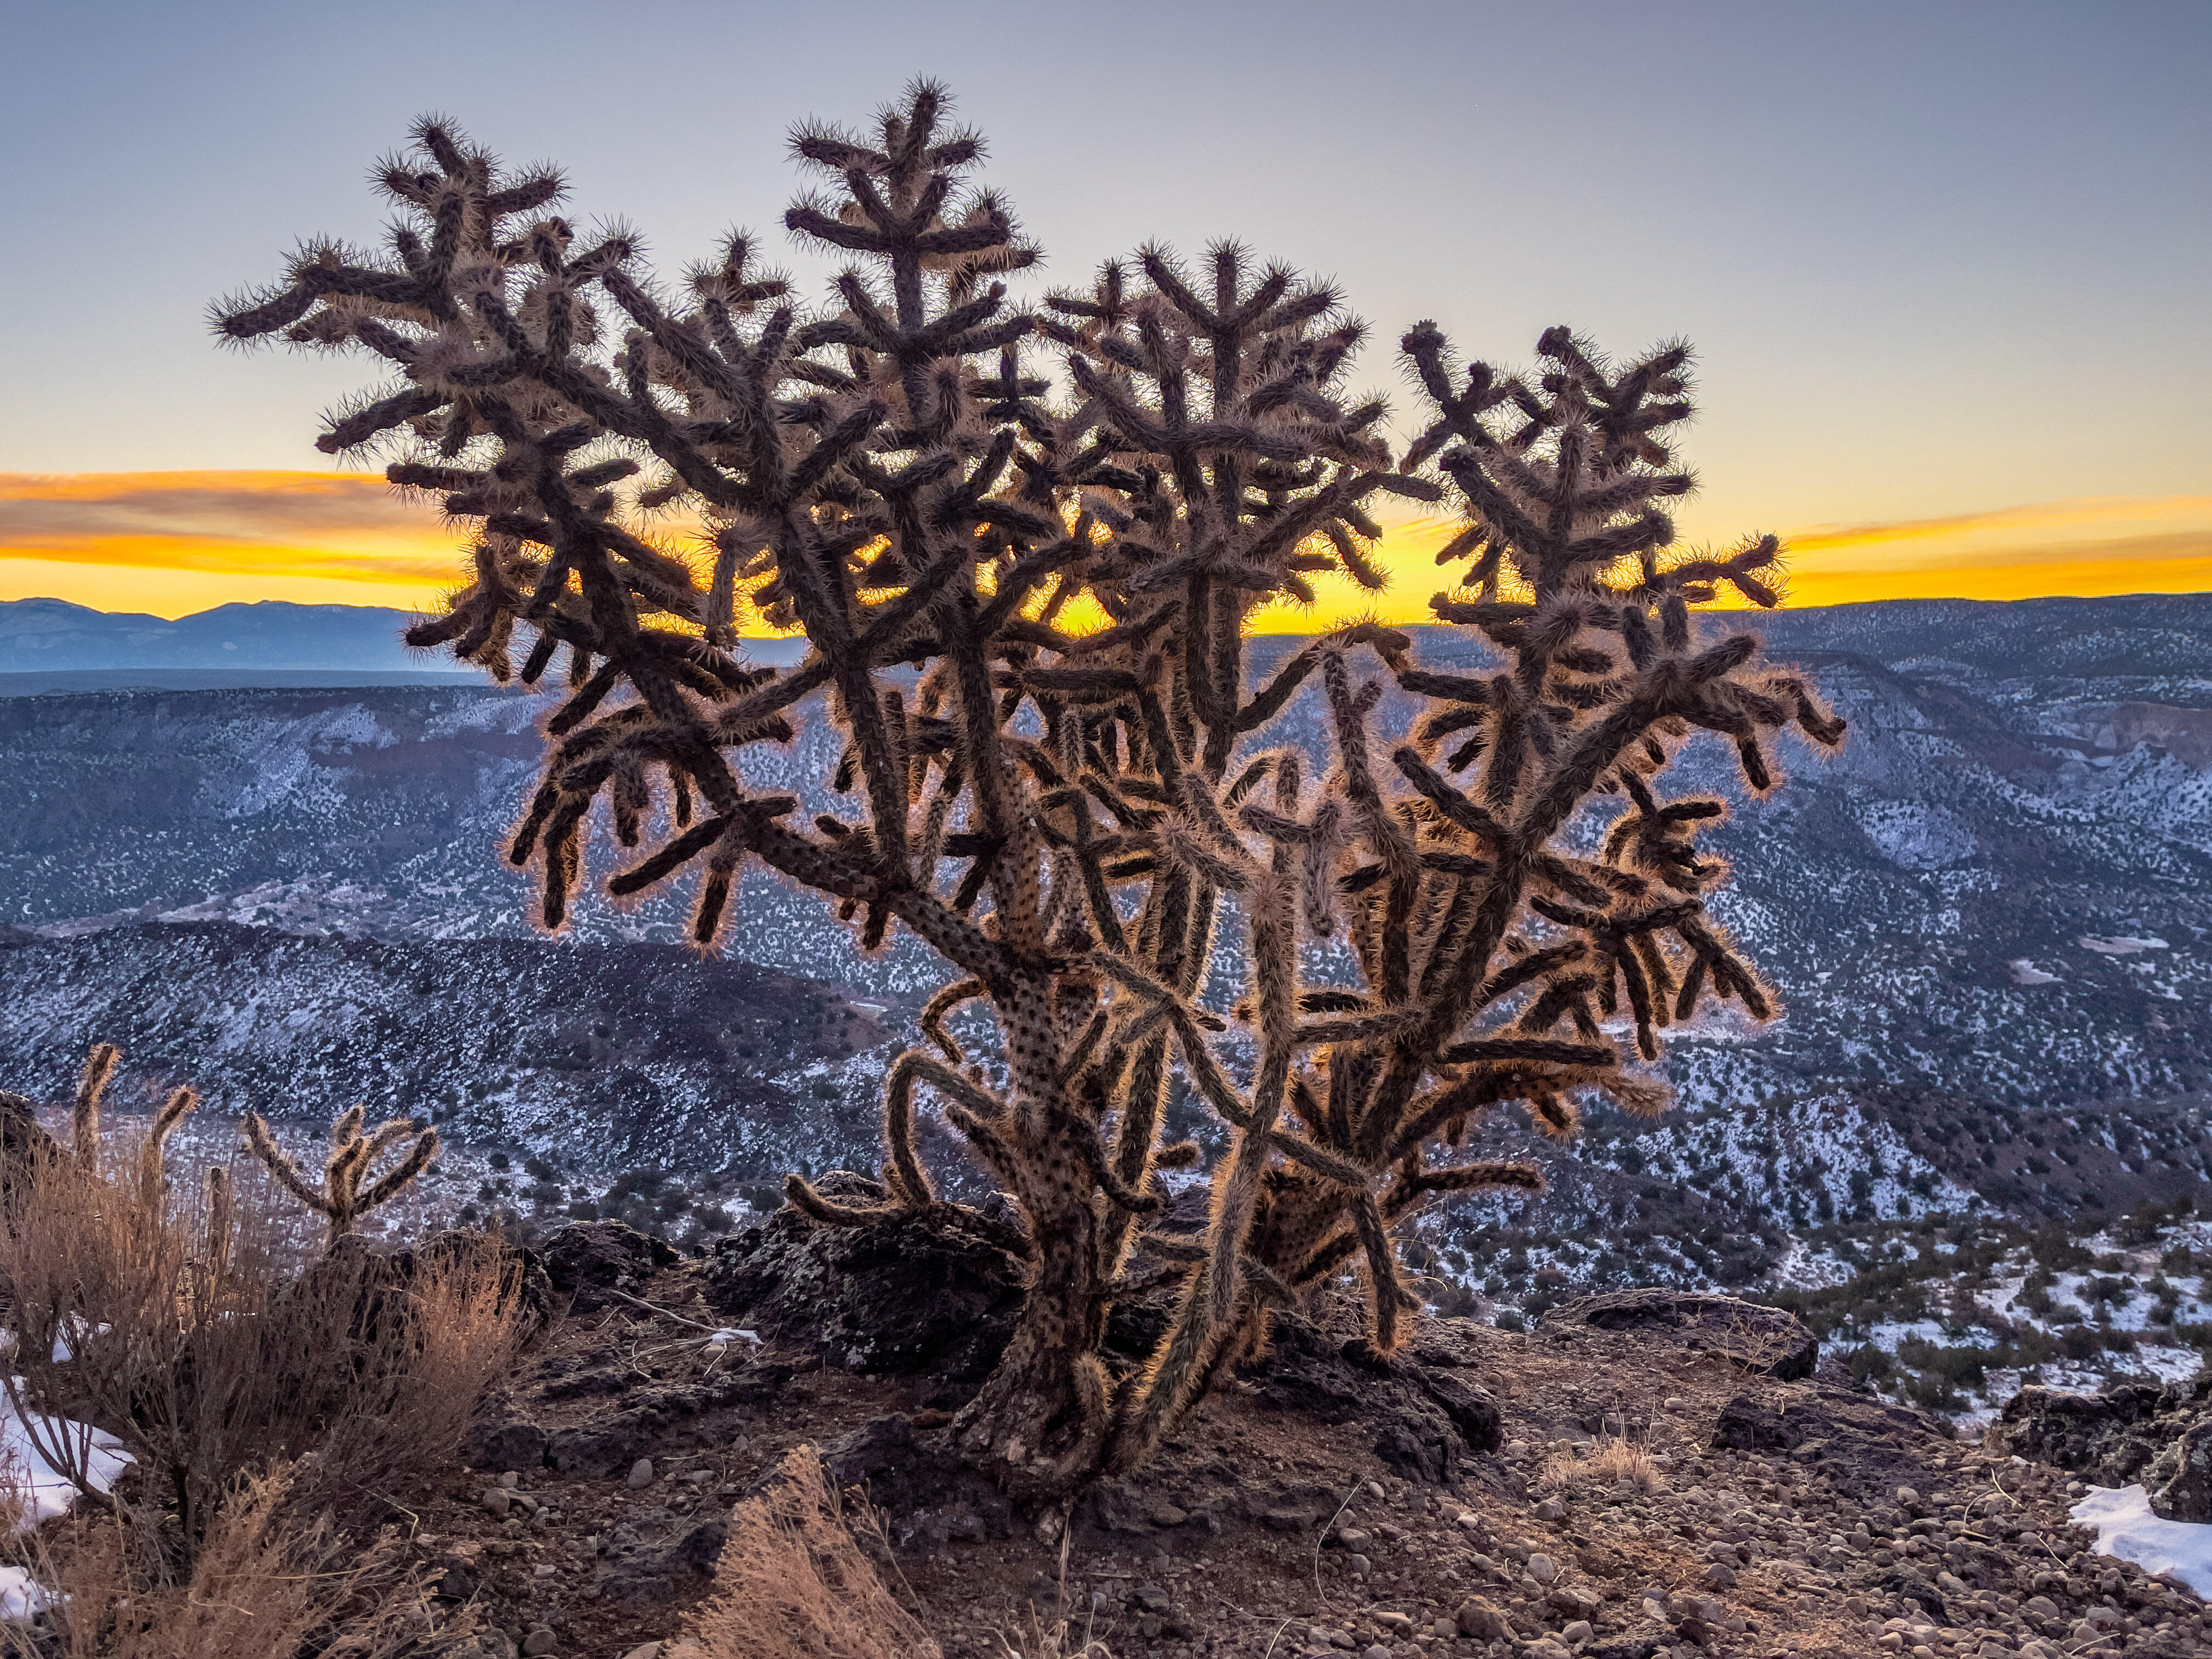 <p>The flexibility of Apple's ProRaw photo format let me show the shadow details in this backlit cactus without blowing out the colors of the bright dawn sky.</p>